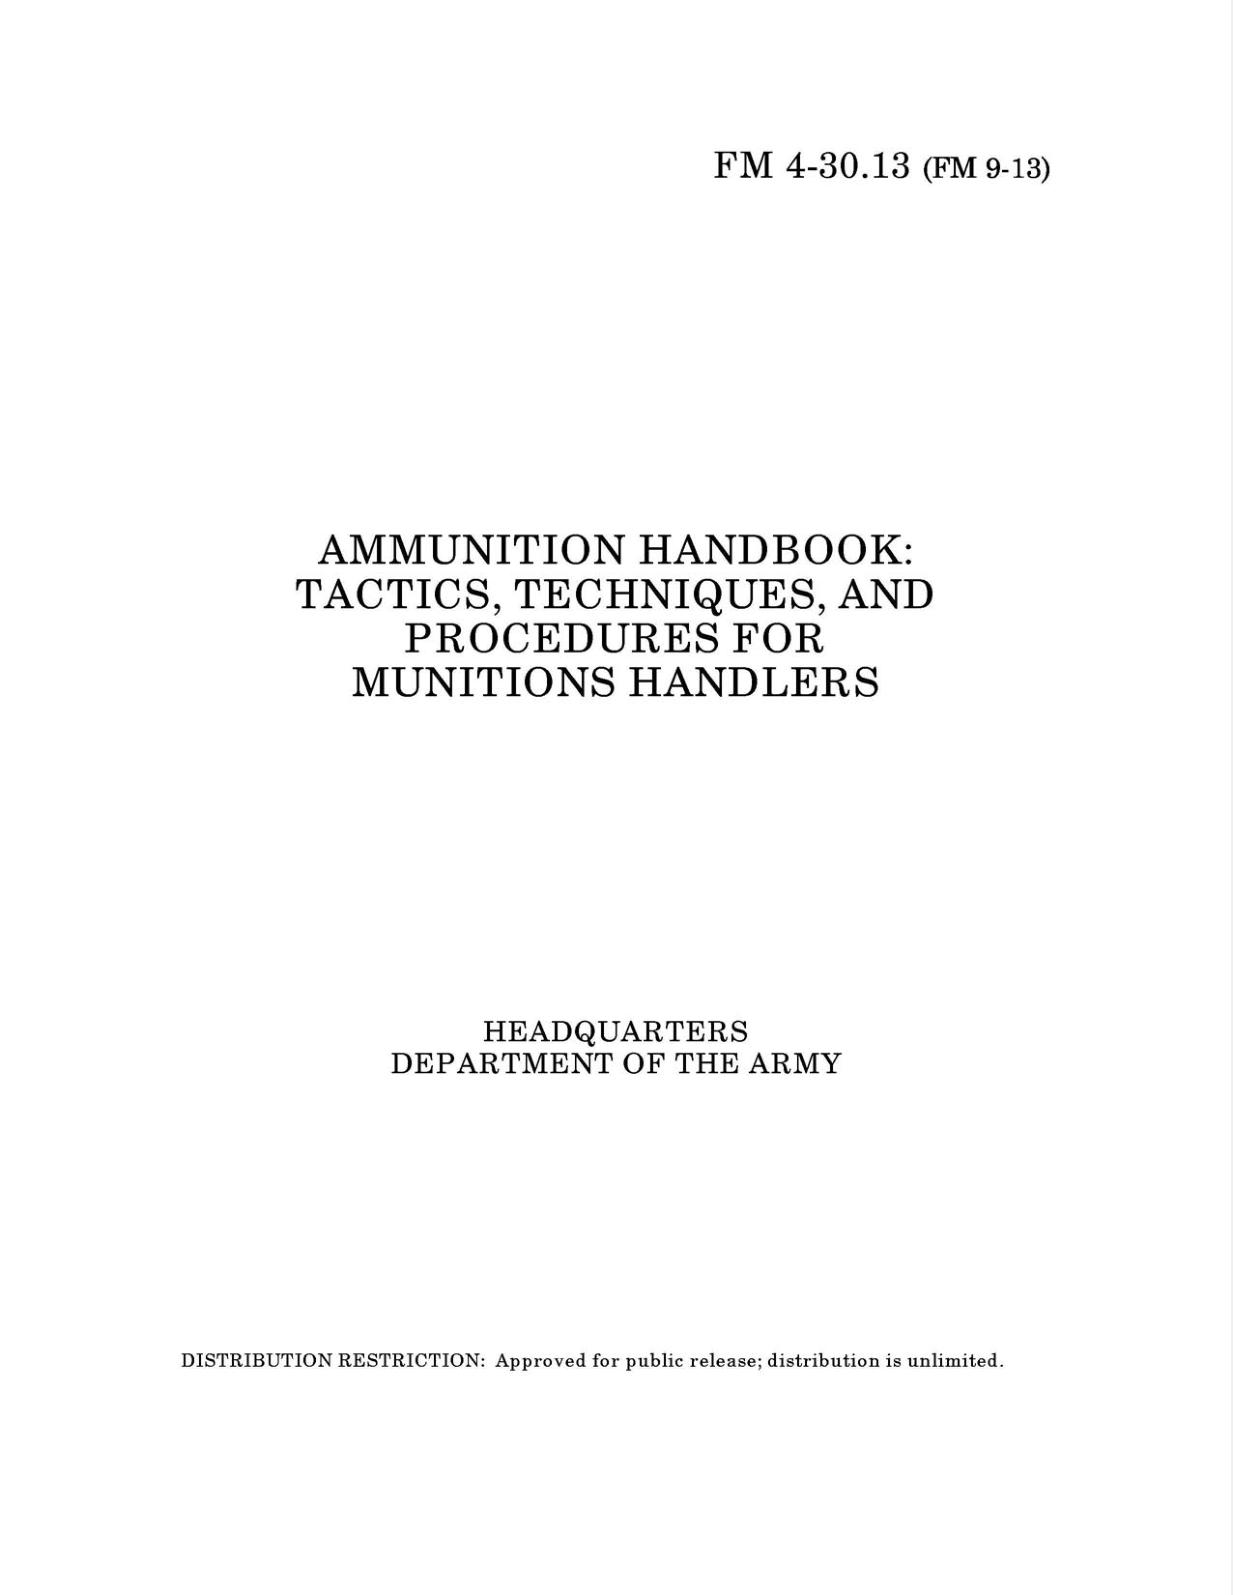 Improvised Munitions Combined with AMMUNITION, GENERAL, TM 9-1300-200